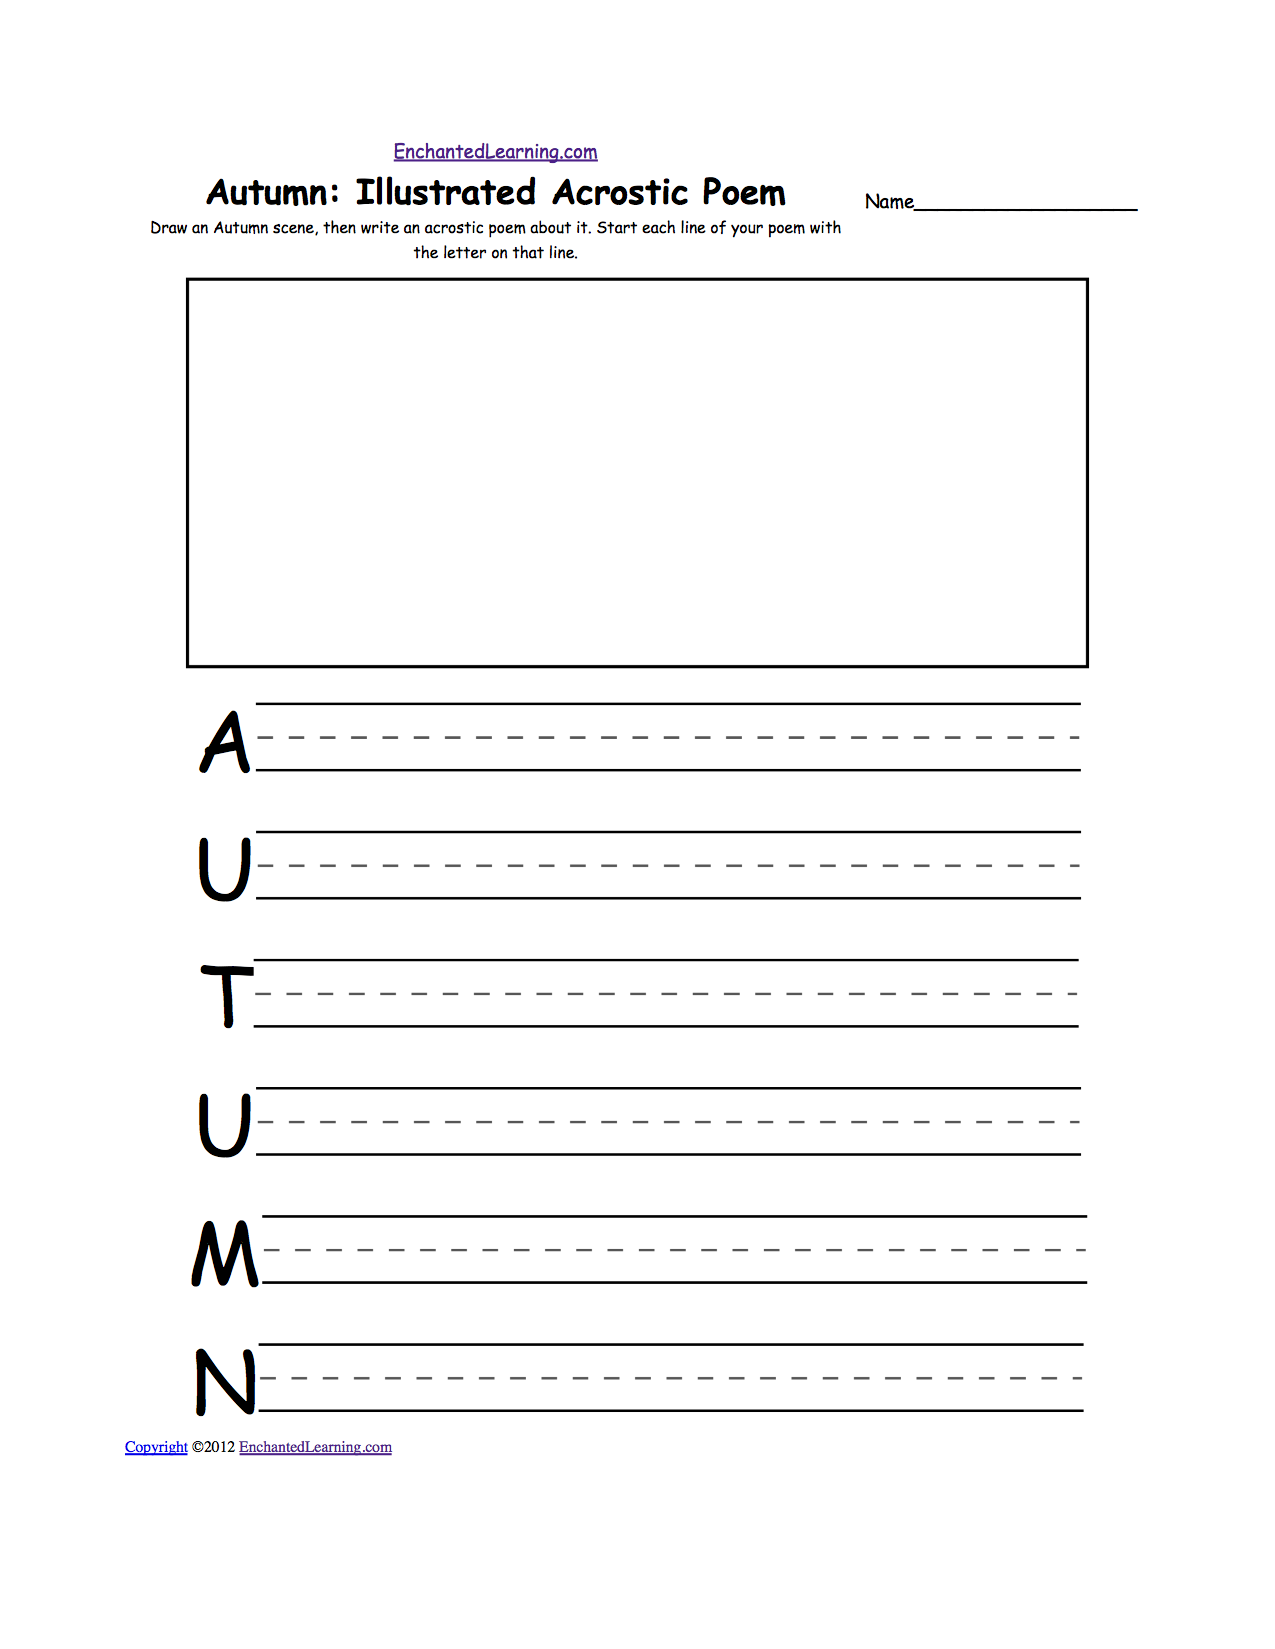 Worksheets Poetry Worksheets illustrated acrostic poem worksheets worksheet printout enchantedlearning com